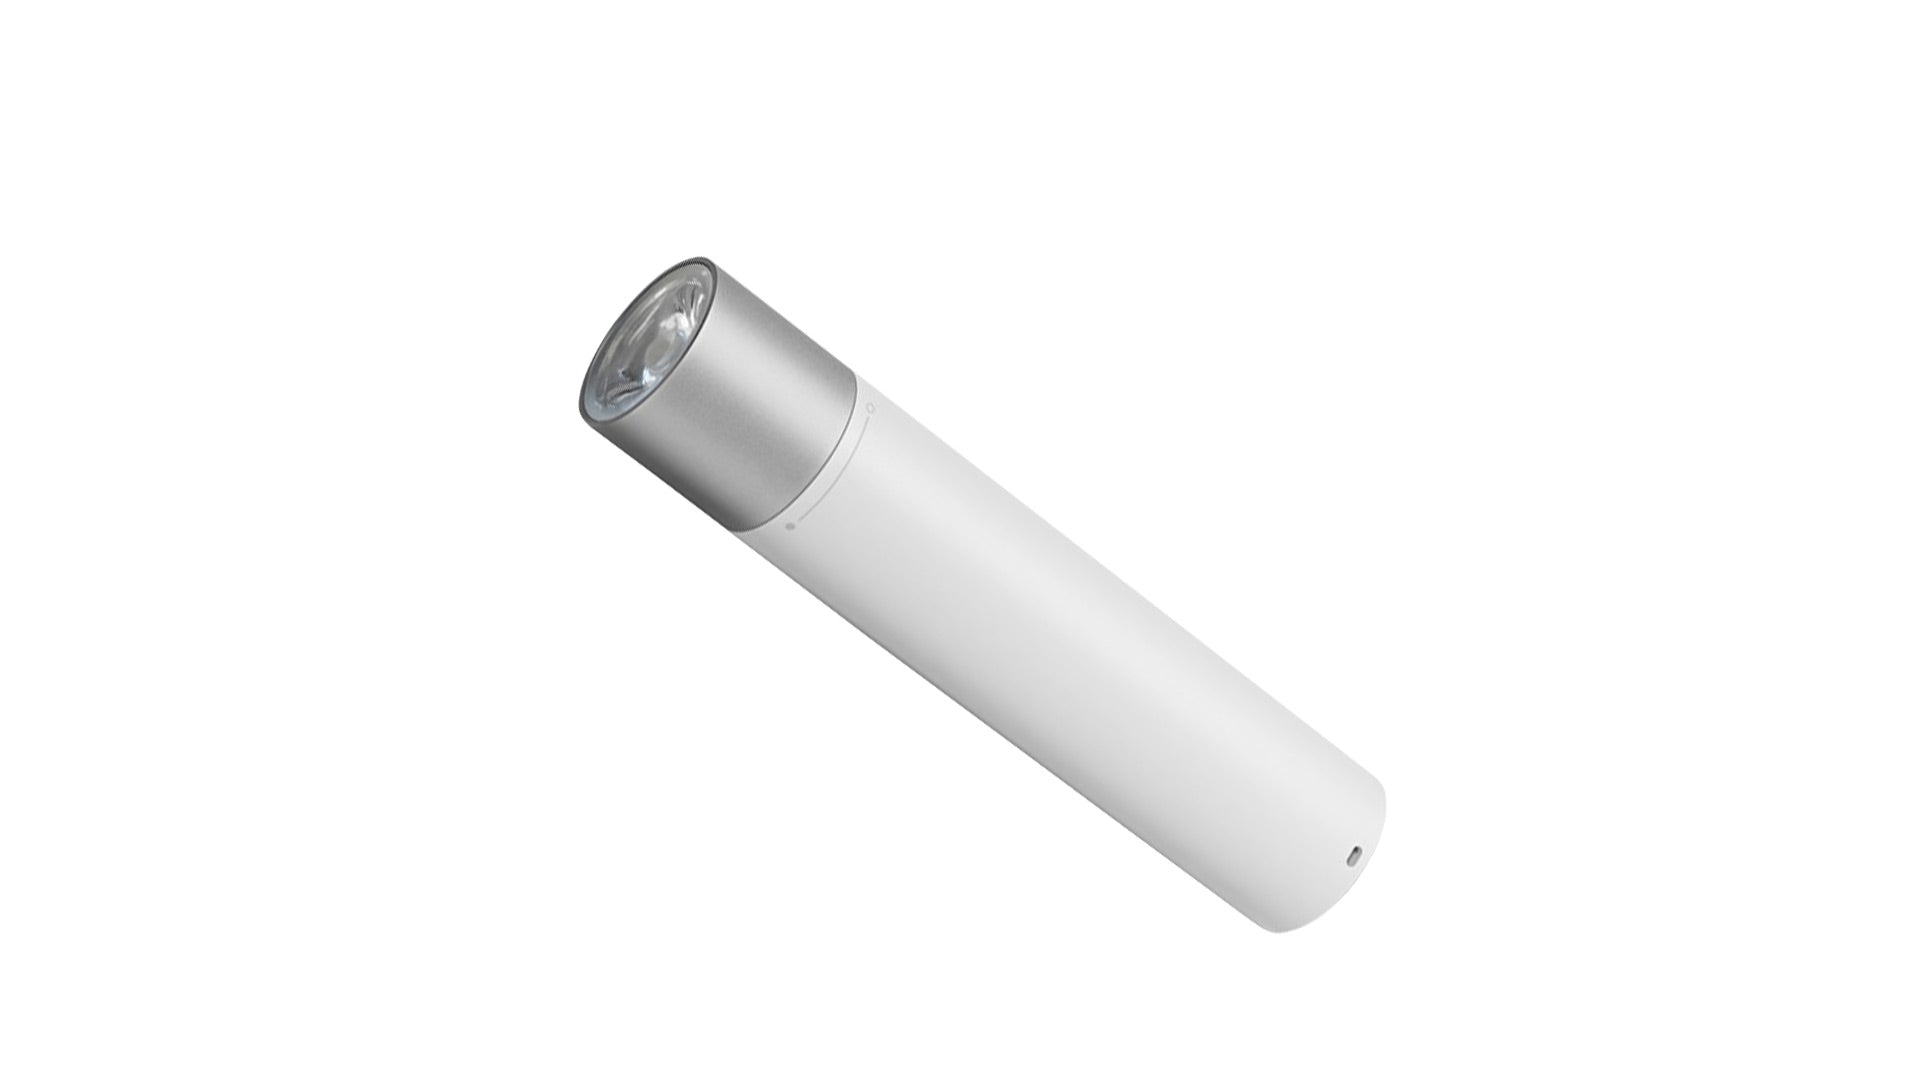 MI- Powerbank (With Flashlight 3250 mAh)